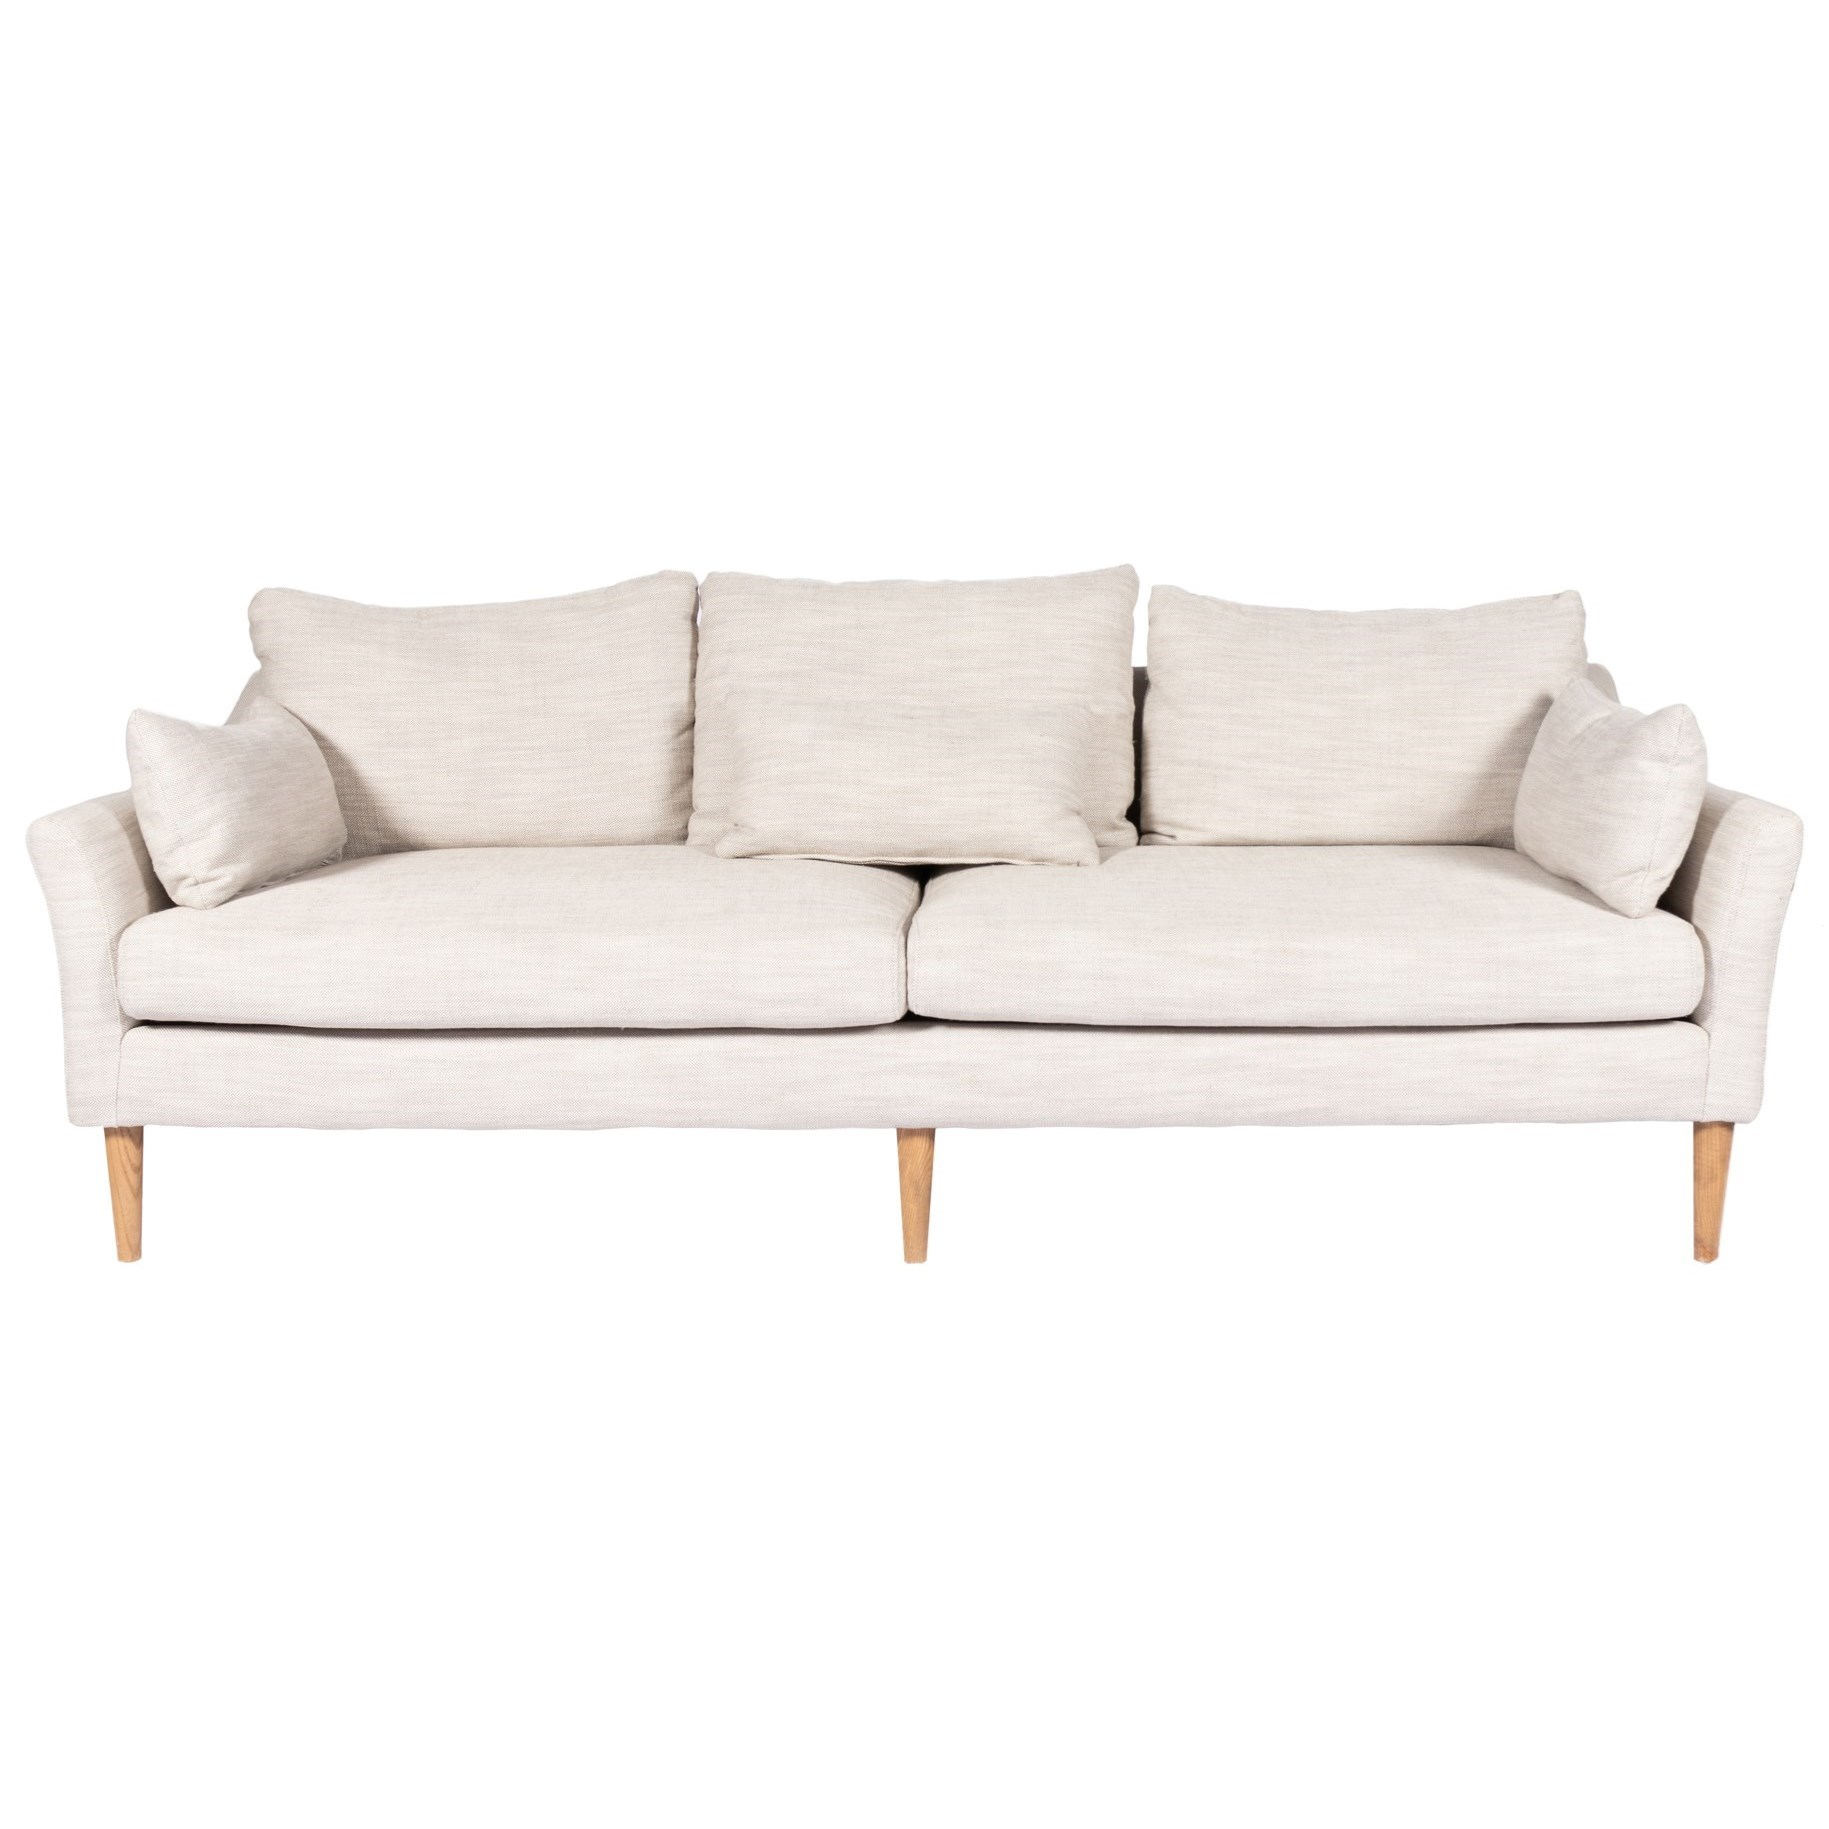 Calista Transitonal Sofa by Moe's Home Collection at Stoney Creek Furniture